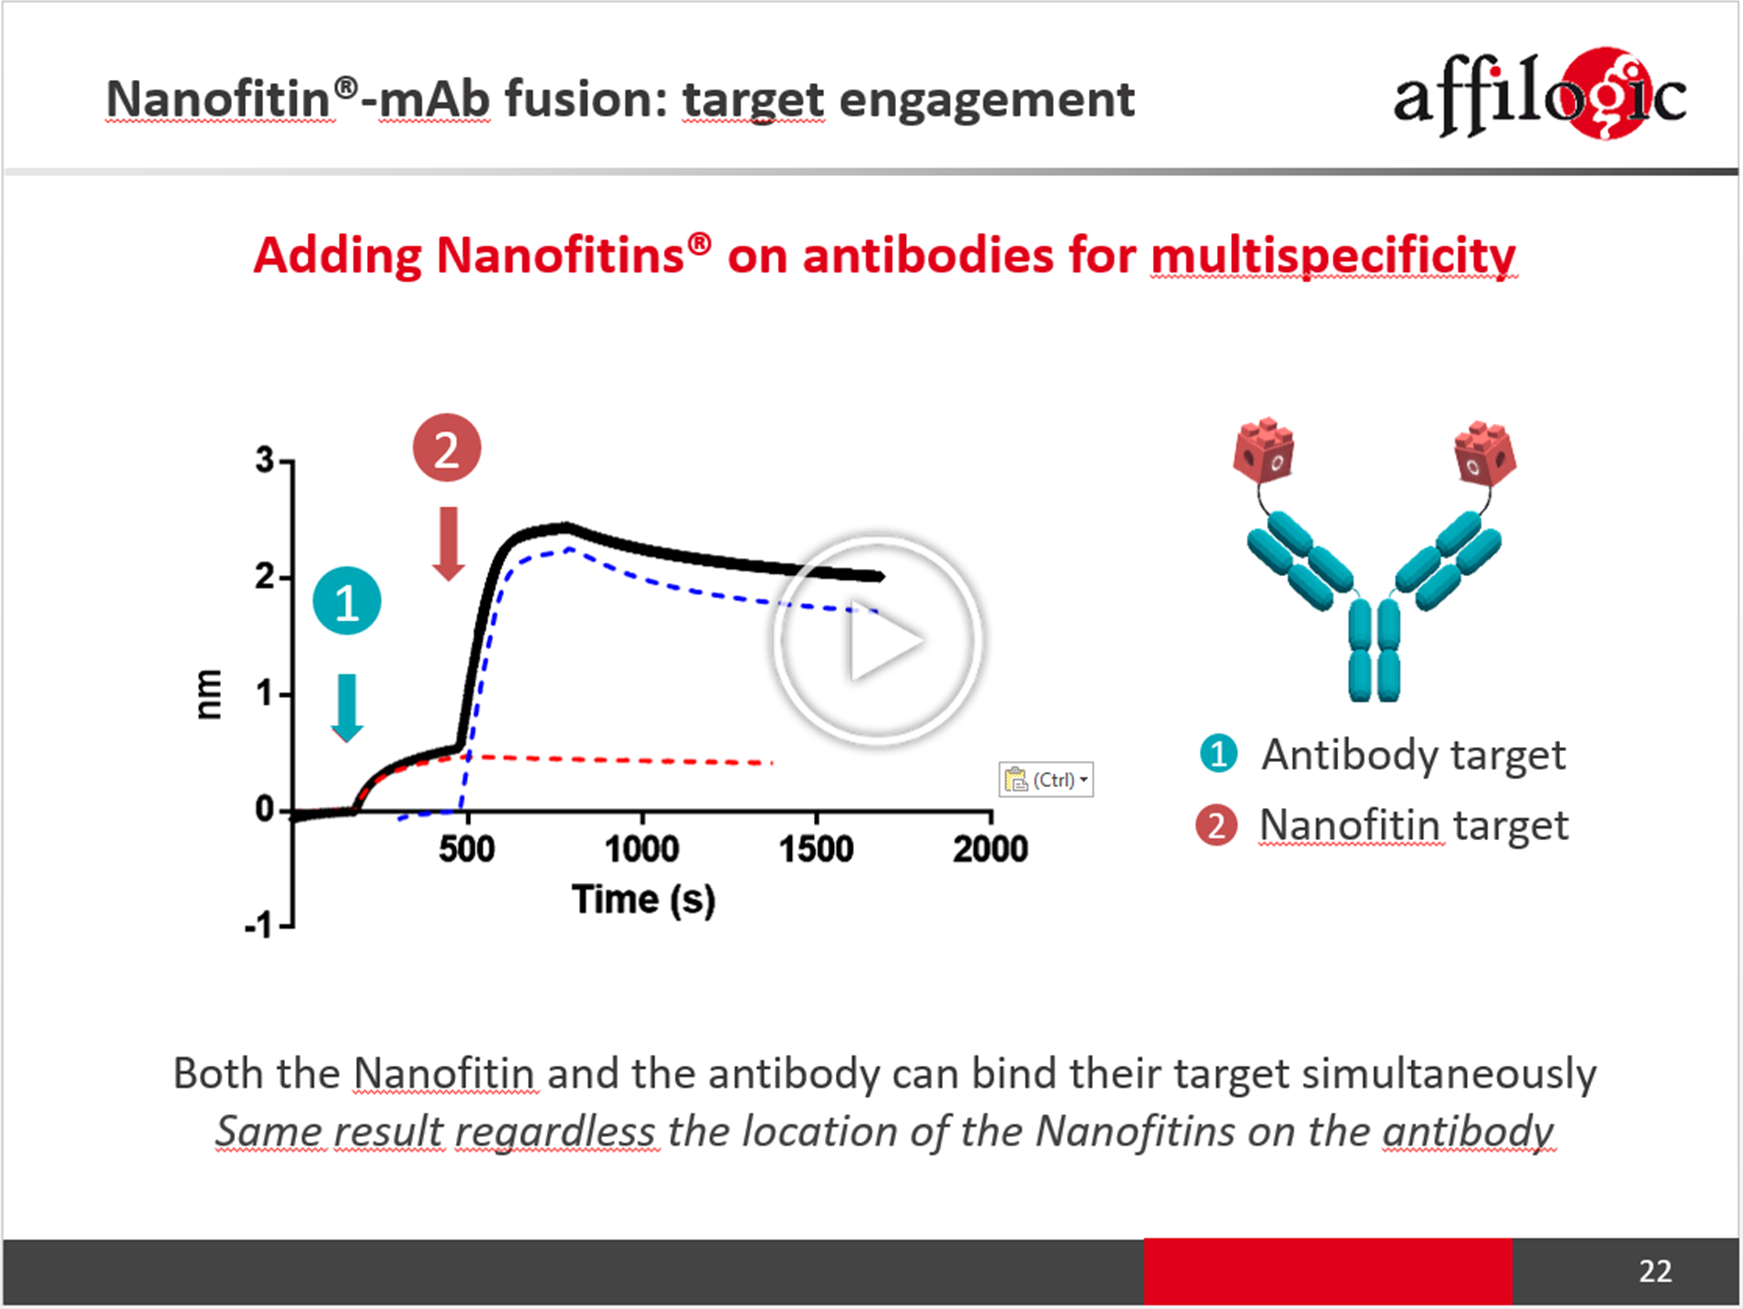 Nanofitin-Antibody fusion as a novel multispecific platform: providing extra specificities while maintaining developability